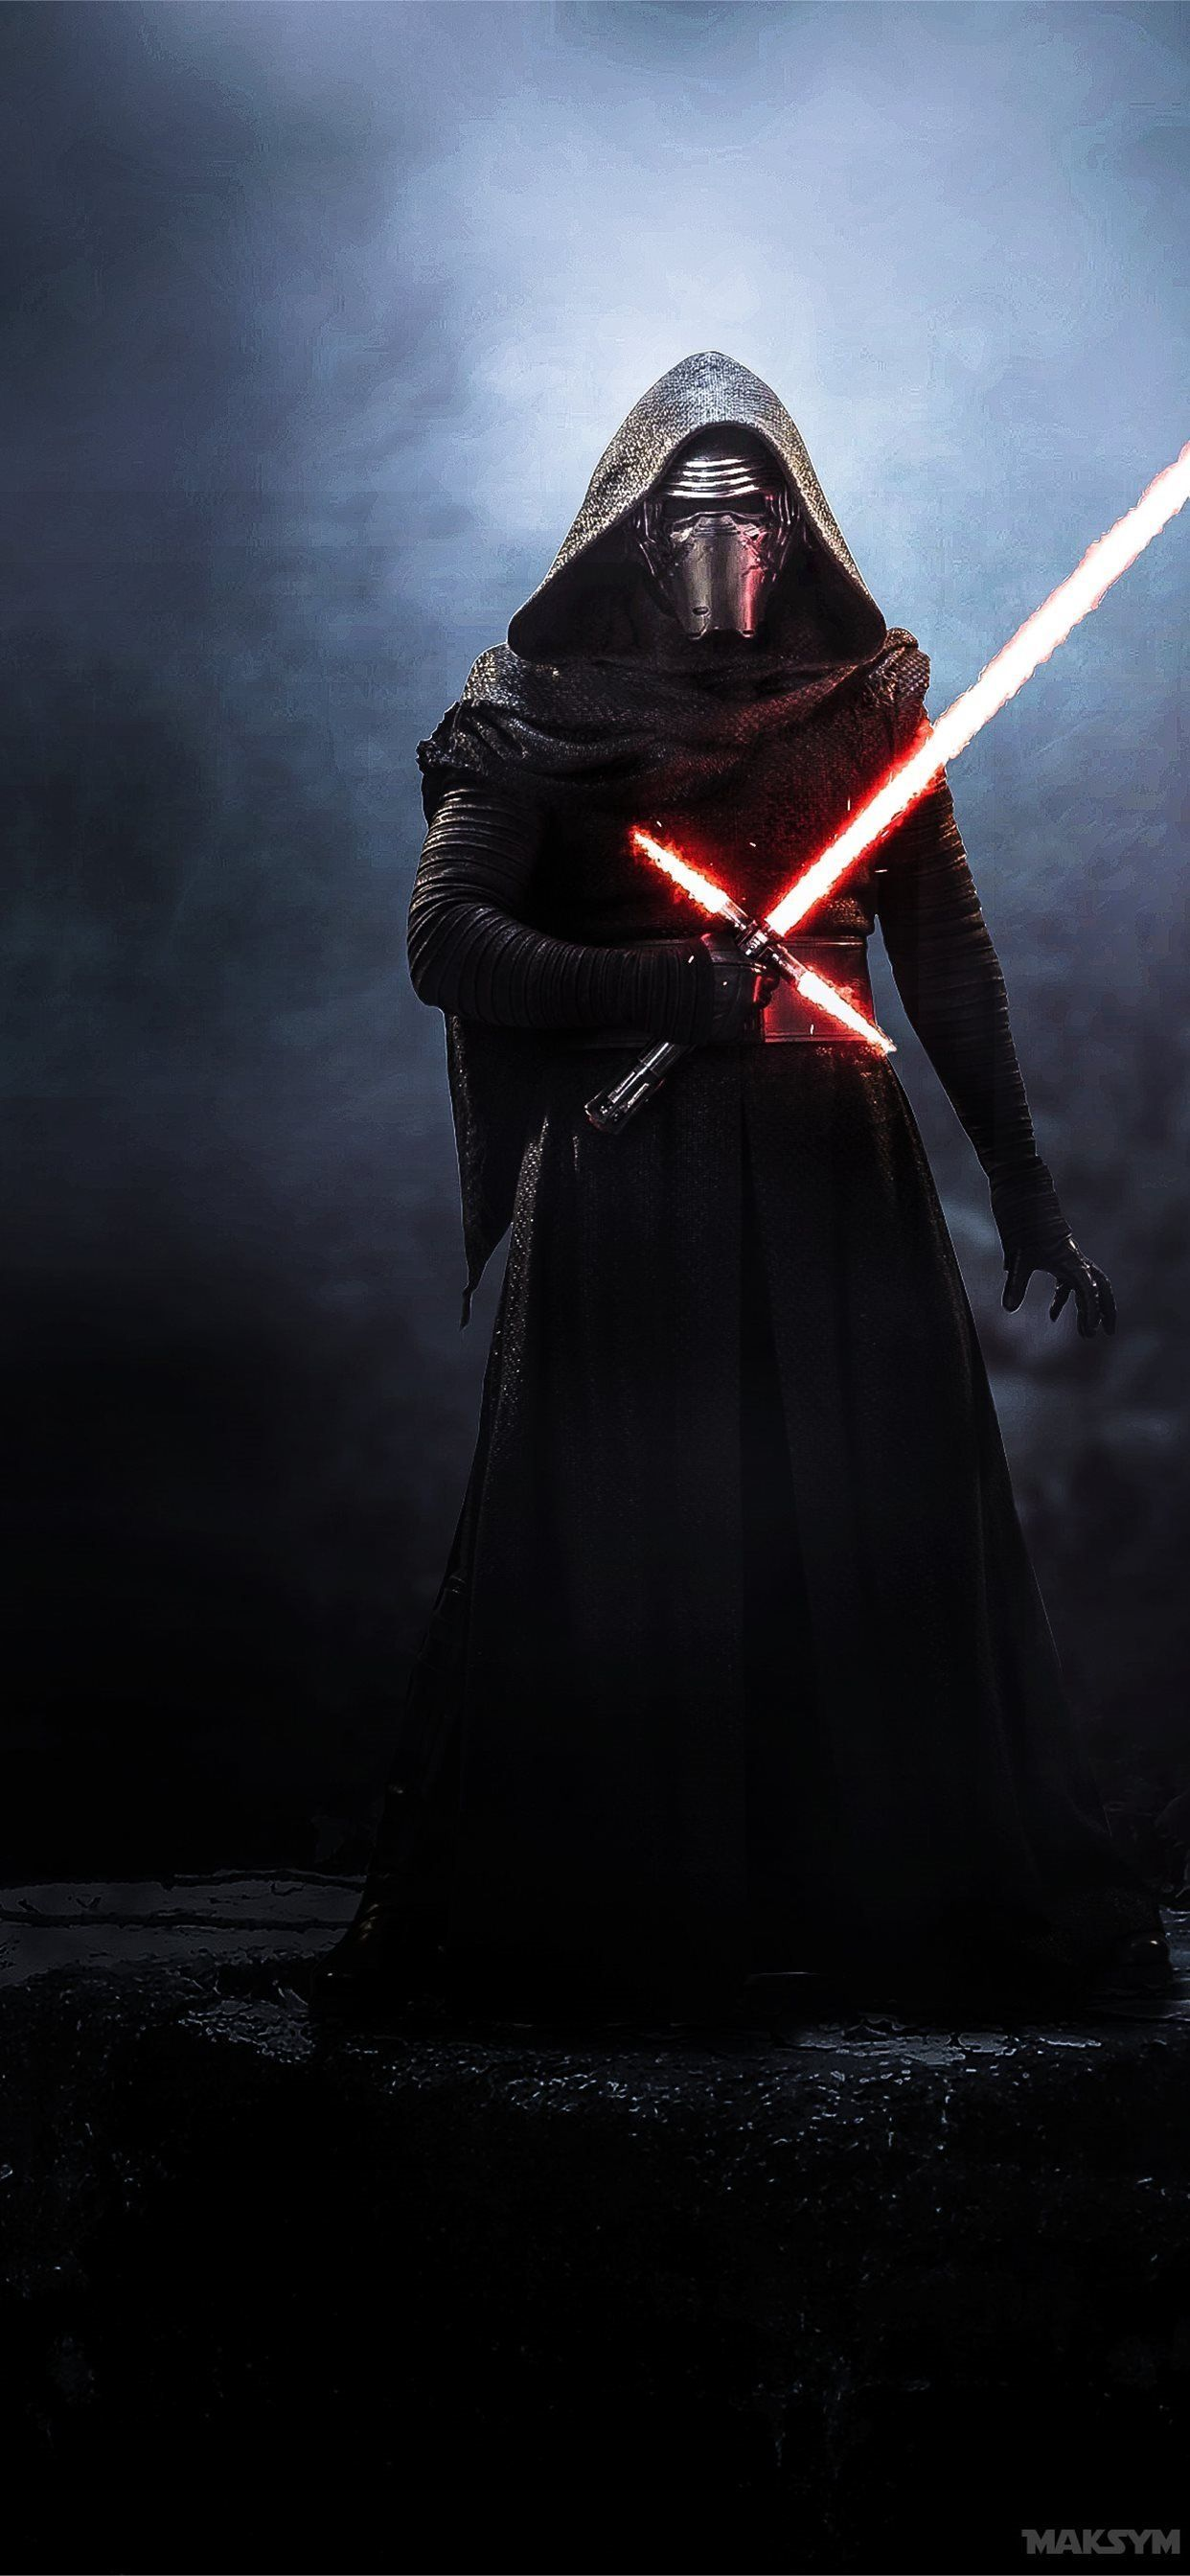 23 Star Wars Iphone 11 Pro Max Wallpaper In 2020 Ren Star Wars Kylo Ren Wallpaper Star Wars Wallpaper Iphone